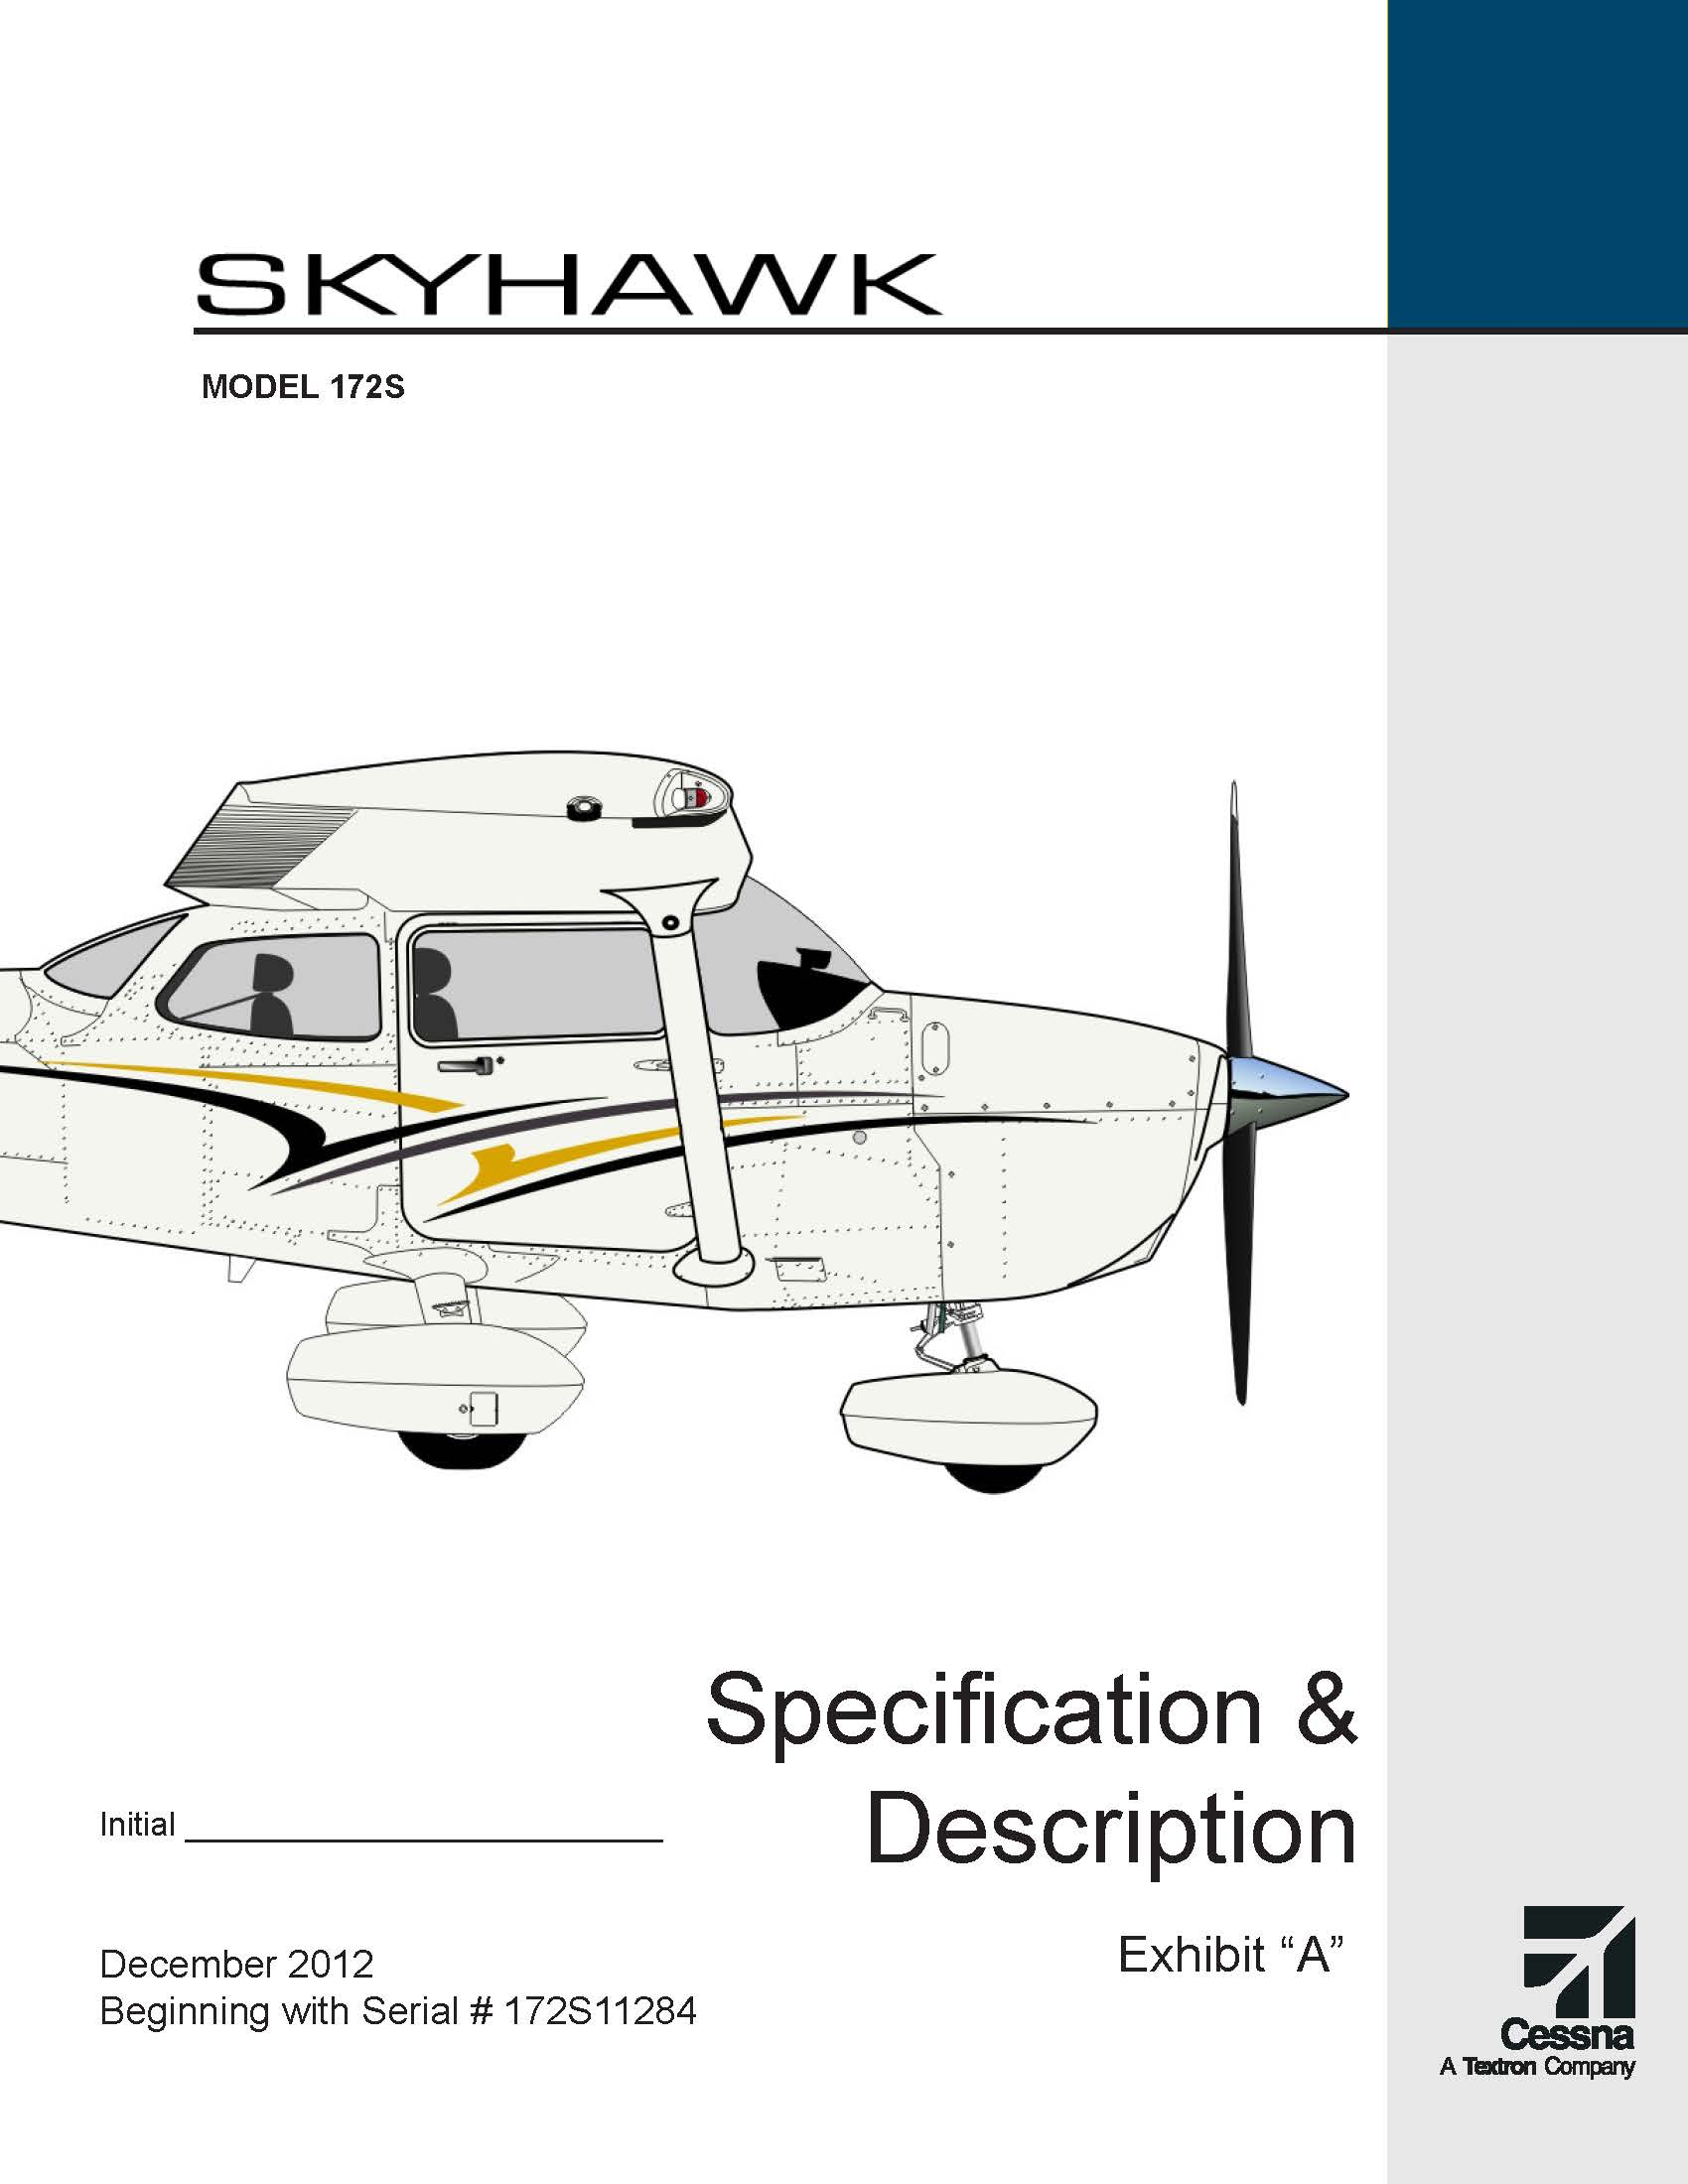 Cessna Skyhawk specs and description